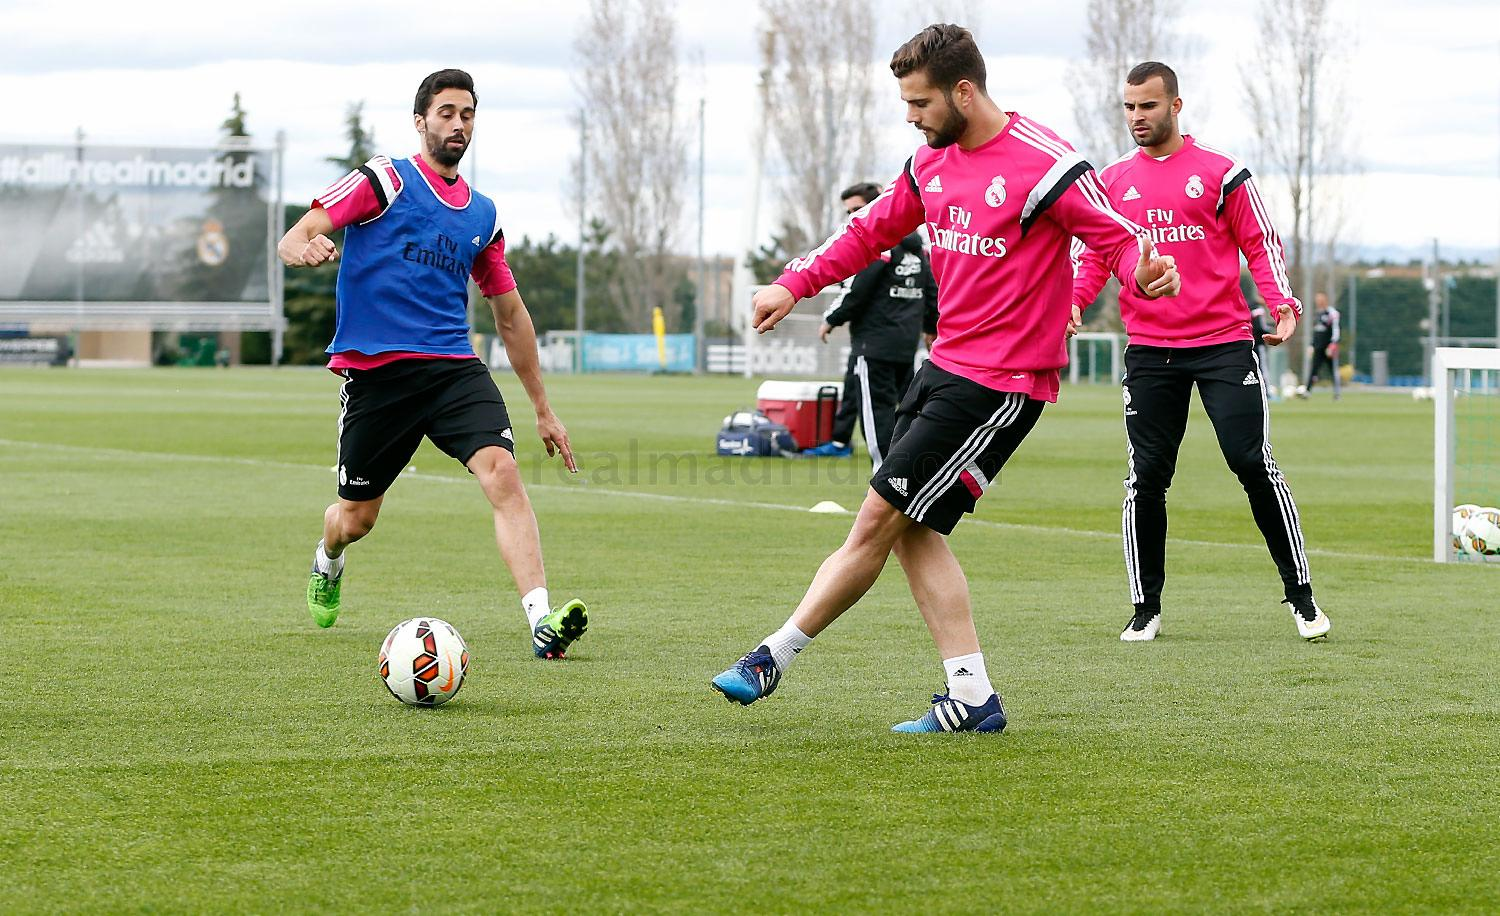 Real Madrid - Entrenamiento del Real Madrid - 24-03-2015